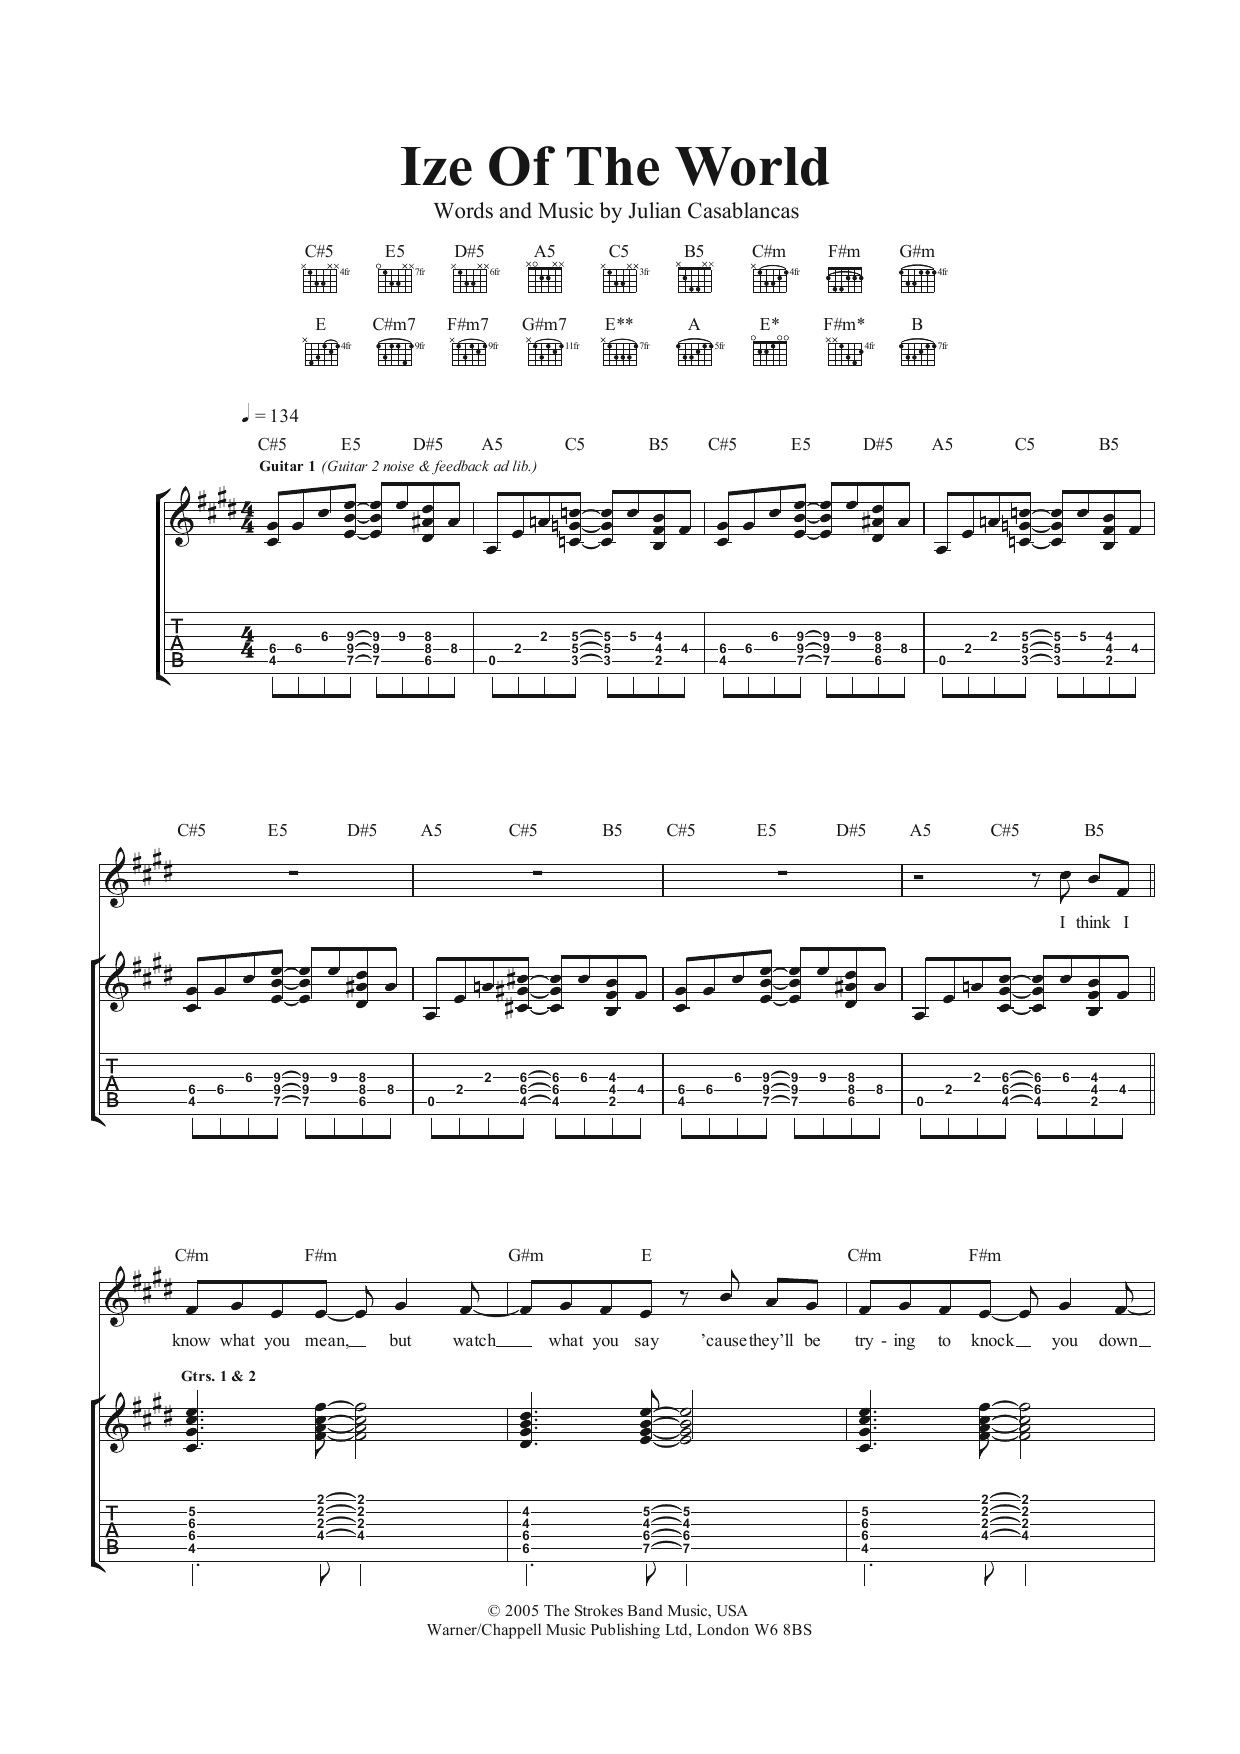 Ize Of The World Sheet Music | The Strokes | Guitar Tab